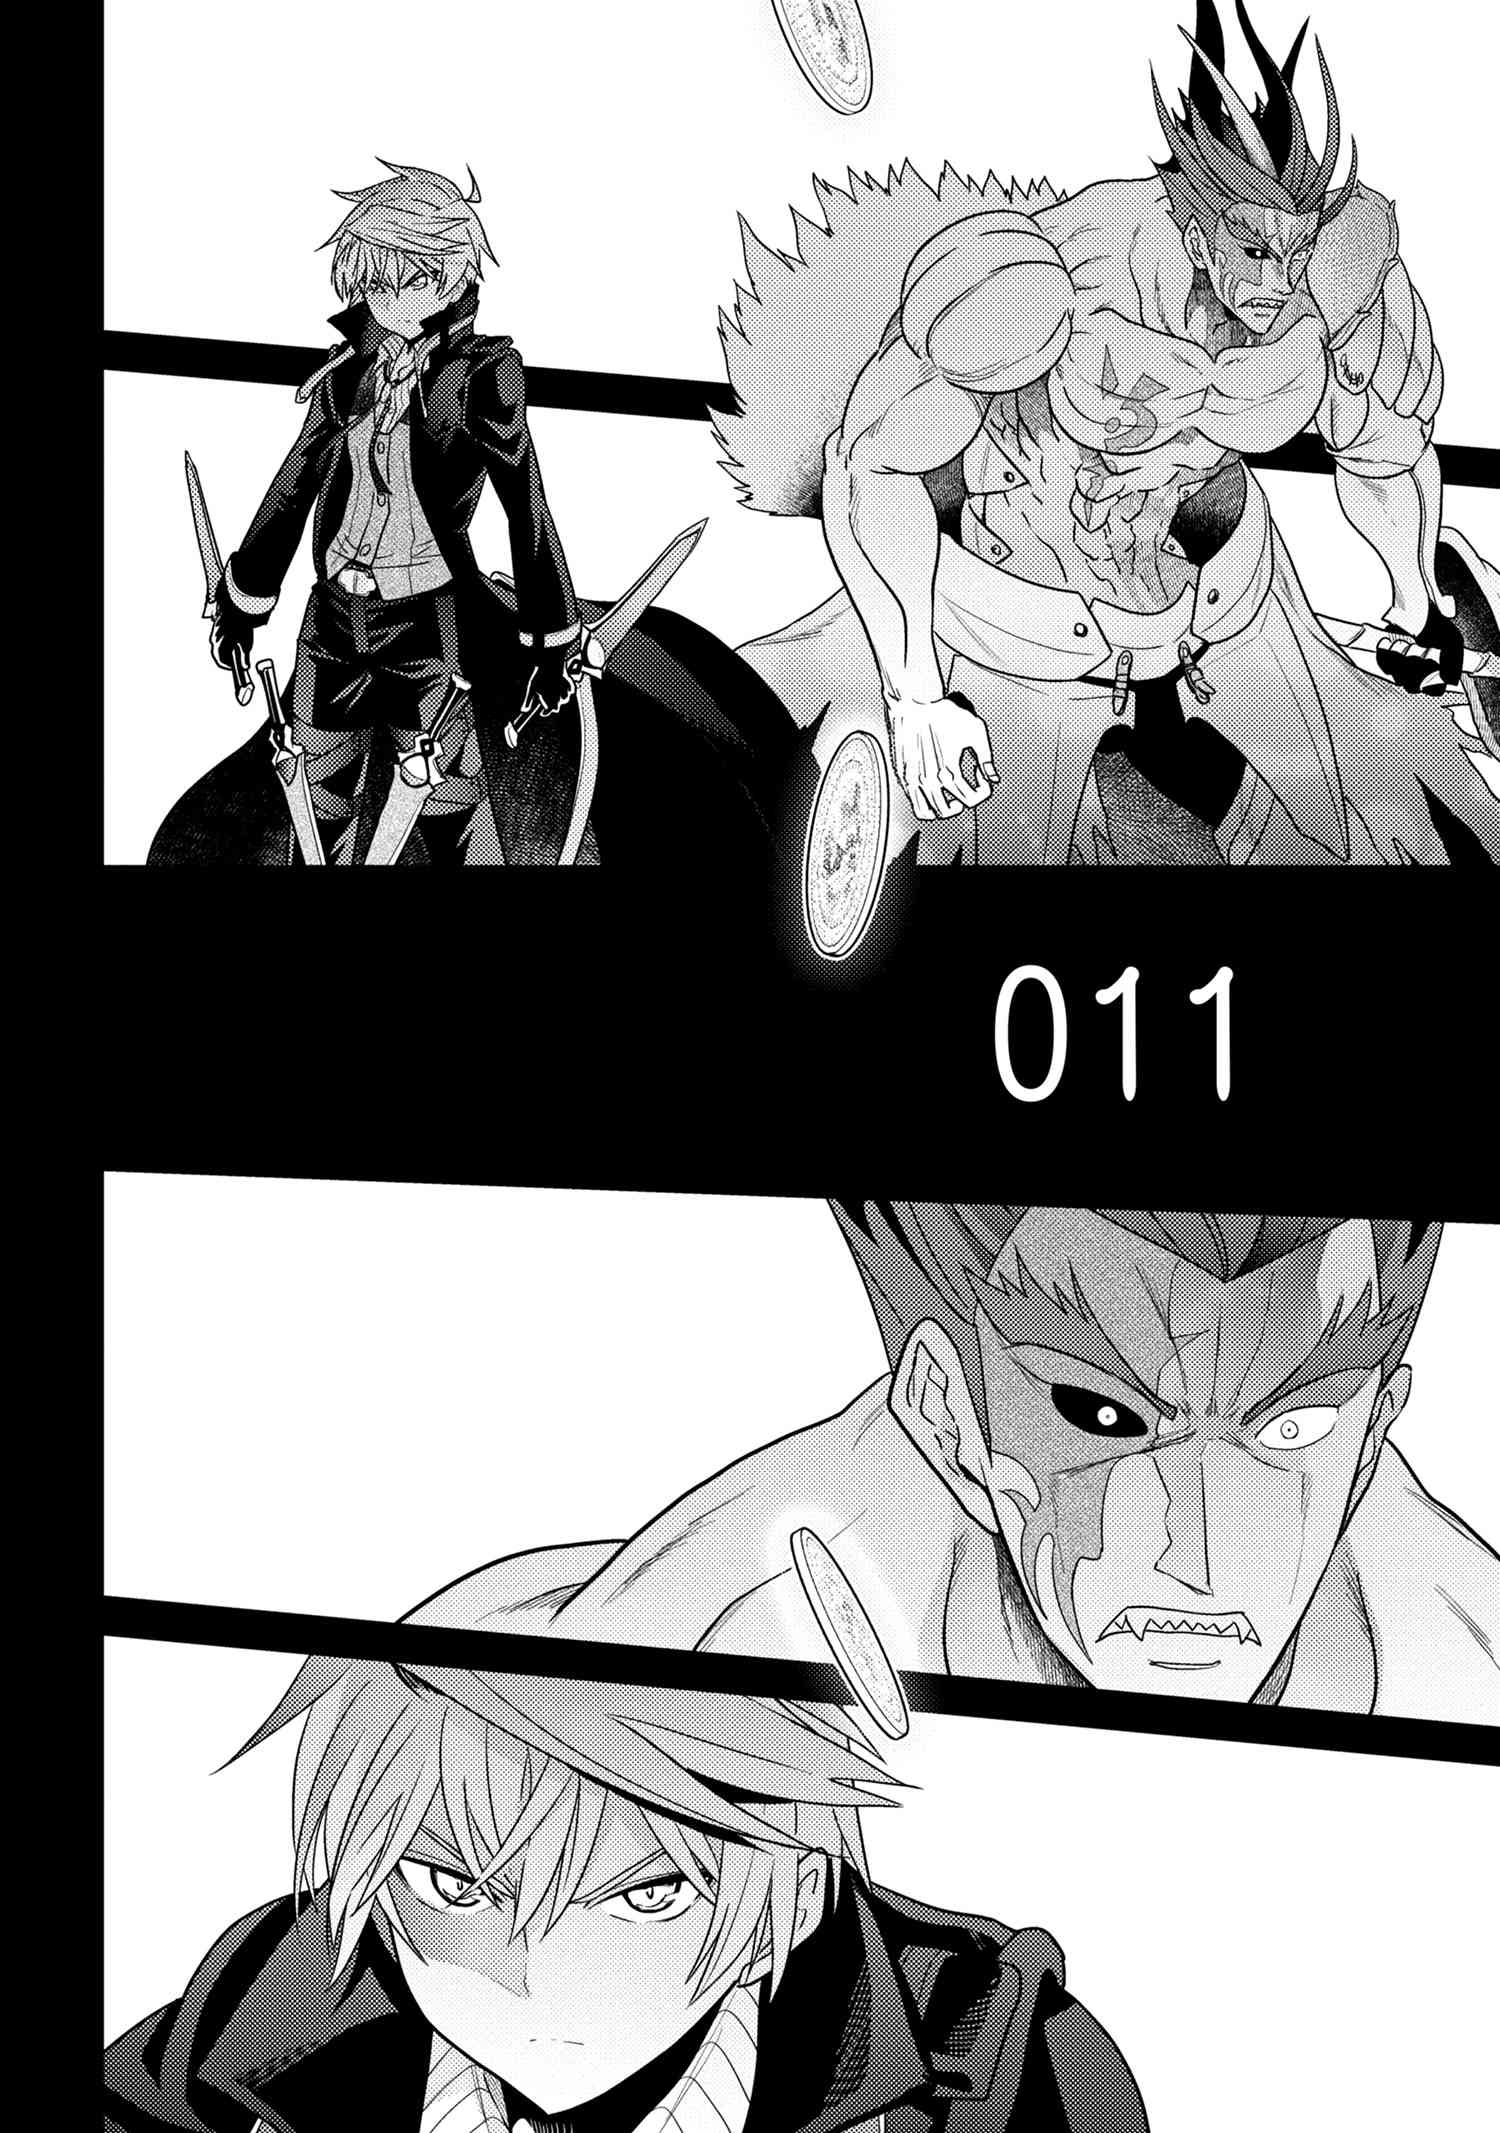 Manga The World's Best Assassin, Reincarnated in a Different World as an Aristocrat - Chapter 9 Page 15